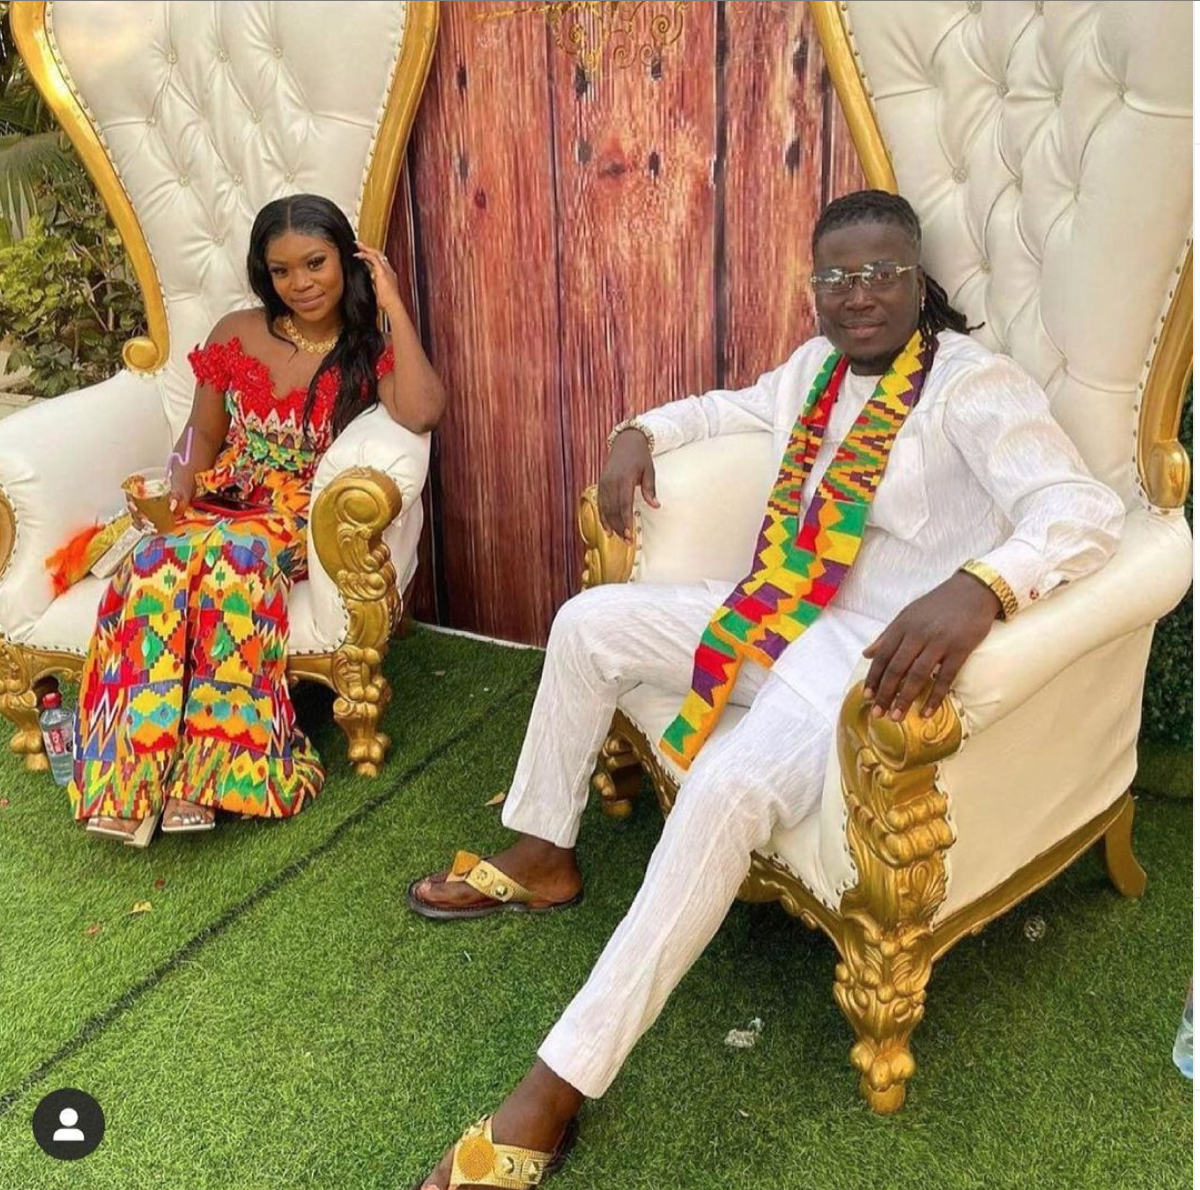 first-look-at-wisa-greid-and-bella-tee's-traditional-wedding-ceremony-happening-now